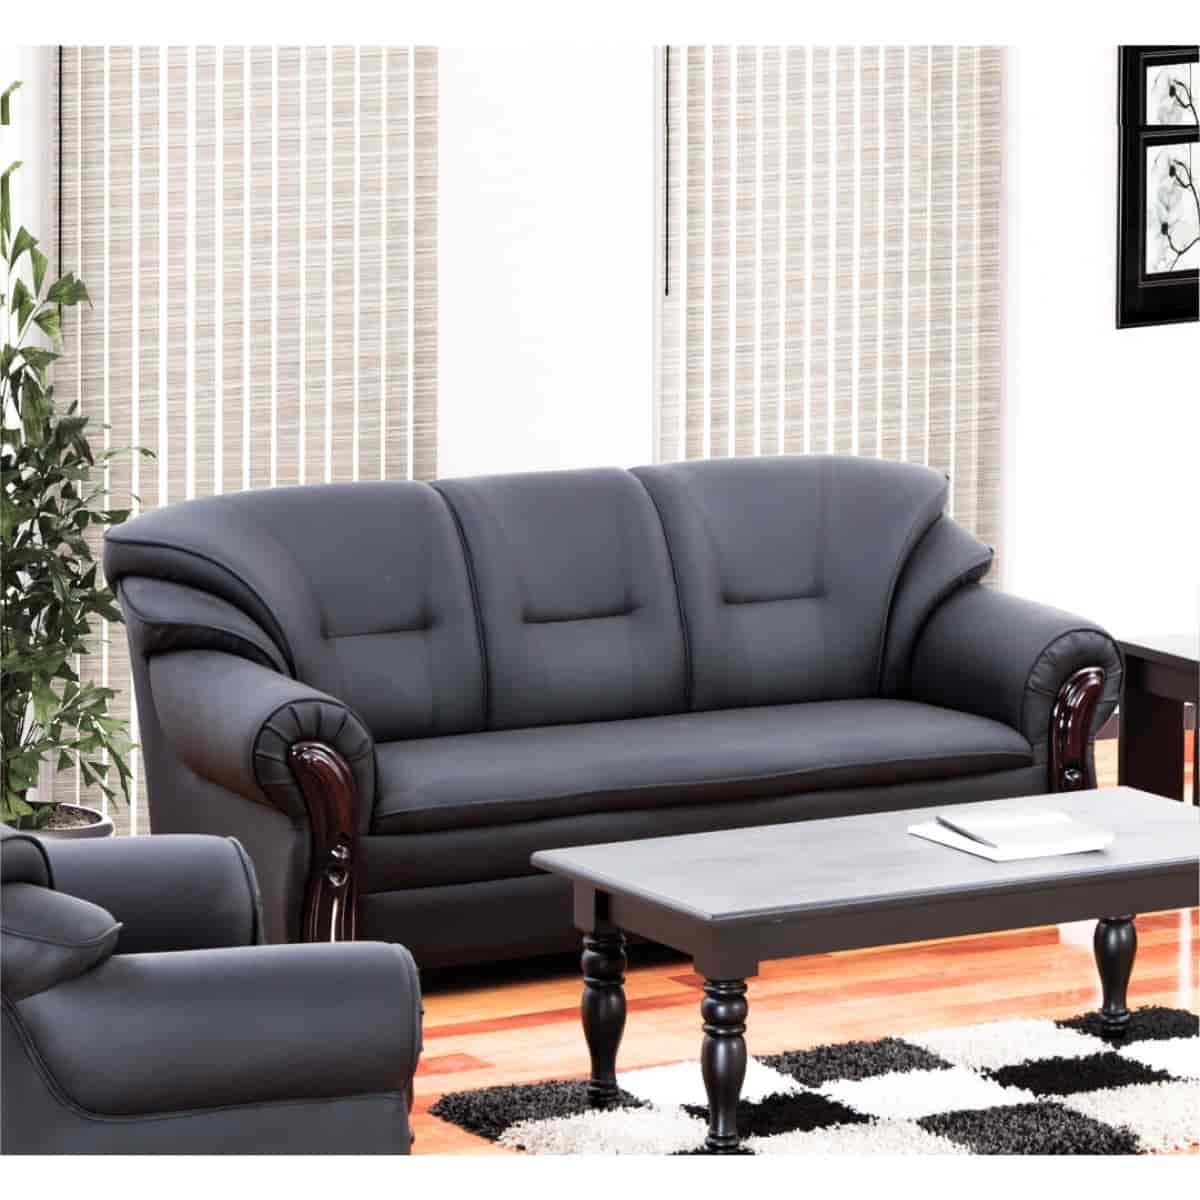 Living Room Designs India Sofa Set Price Low Price Drawing Room Sofa Set Furniture